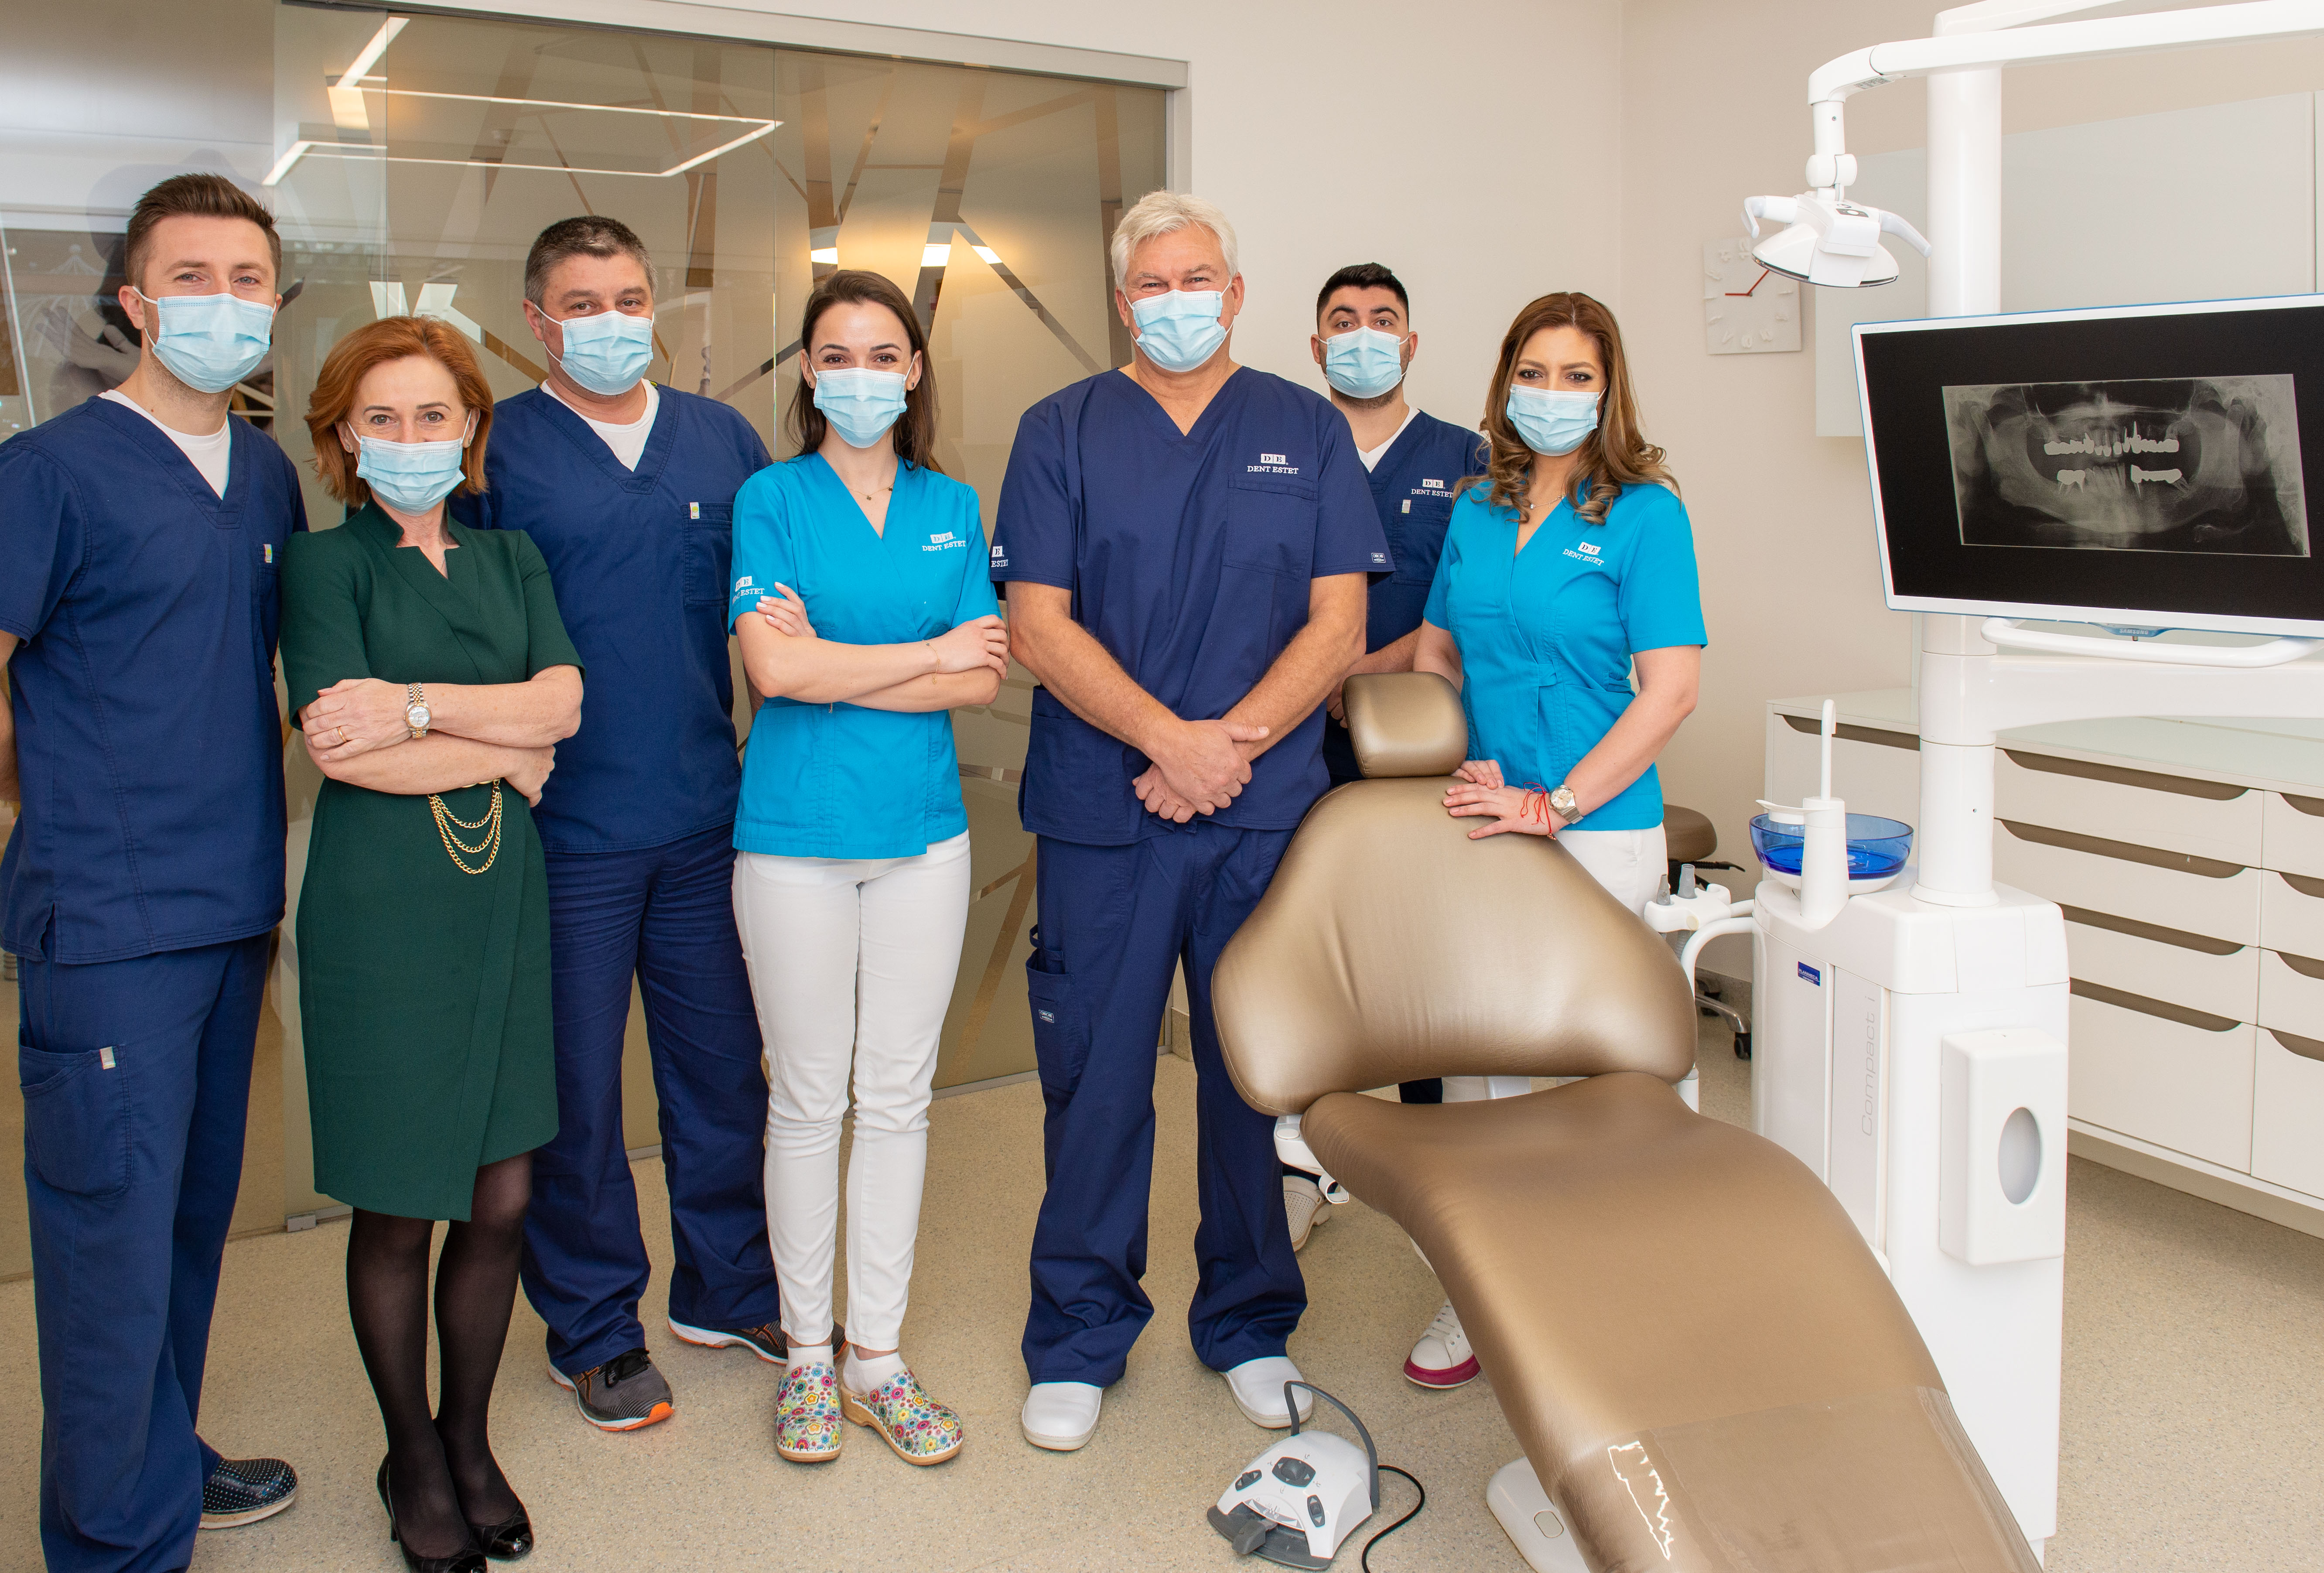 DENT ESTET is the detached leader in dentistry, with a turnover of EUR 13.7 million in 2020